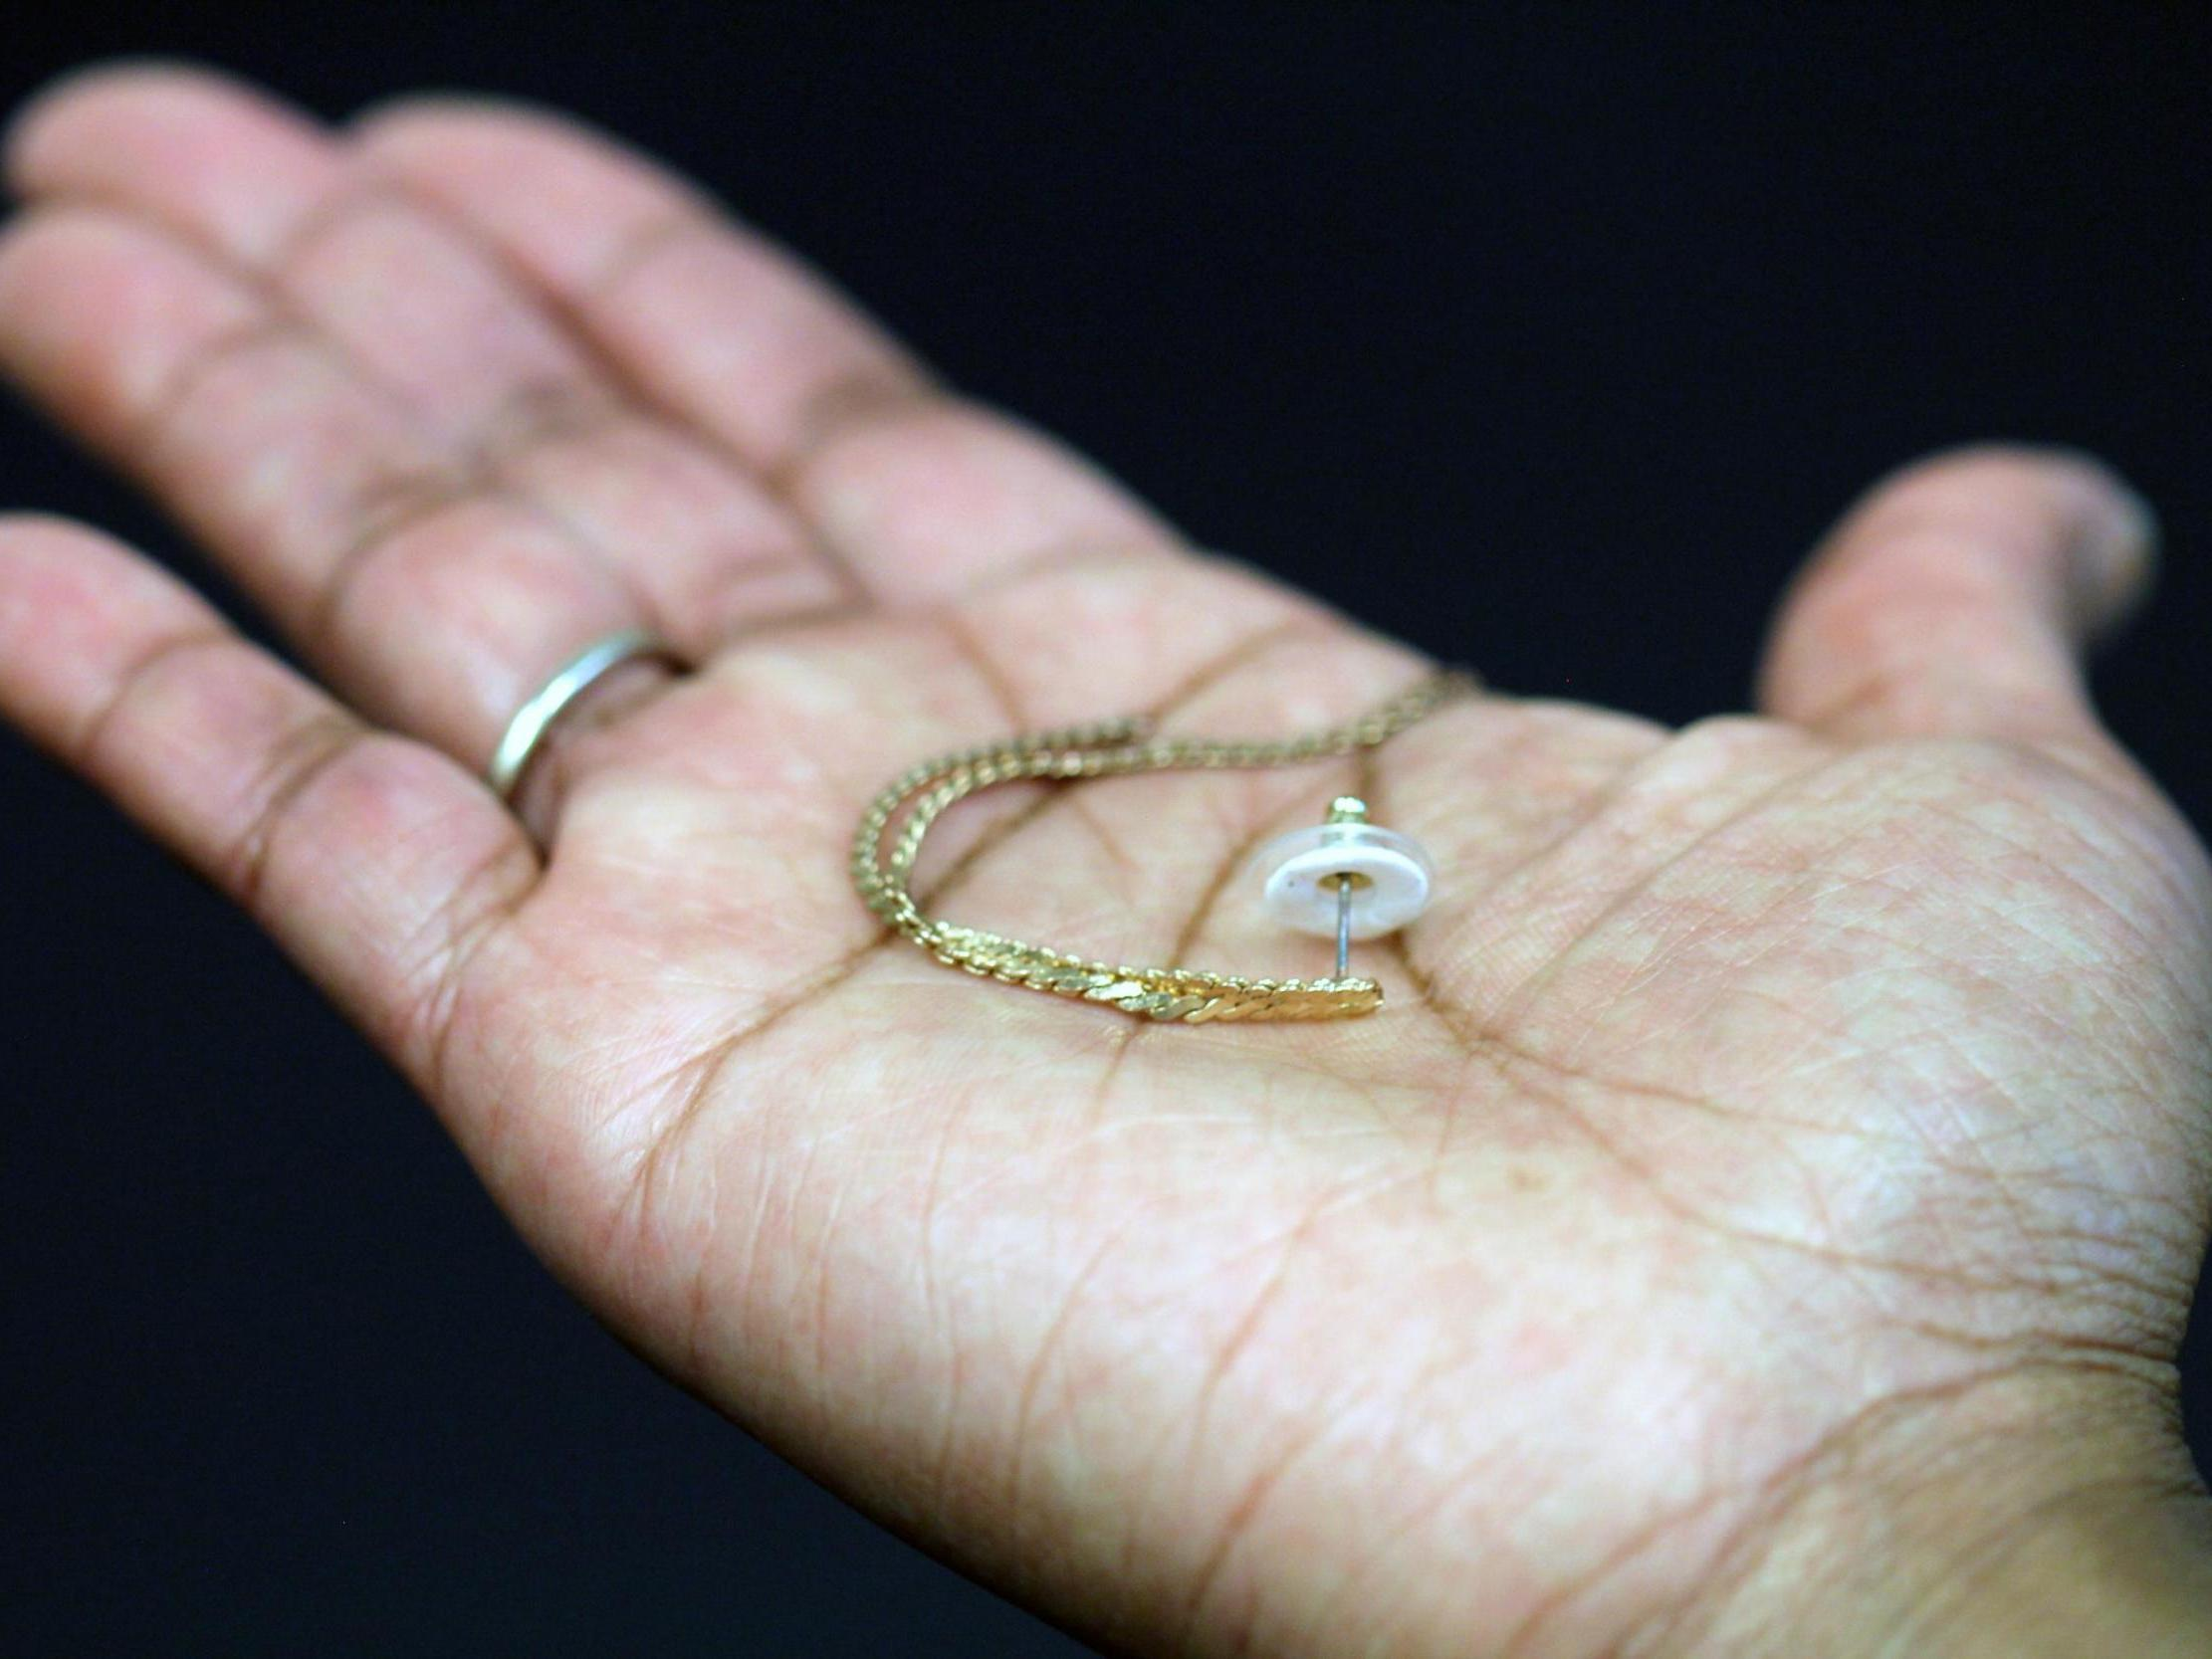 Contraceptive jewellery could be the next method of birth control